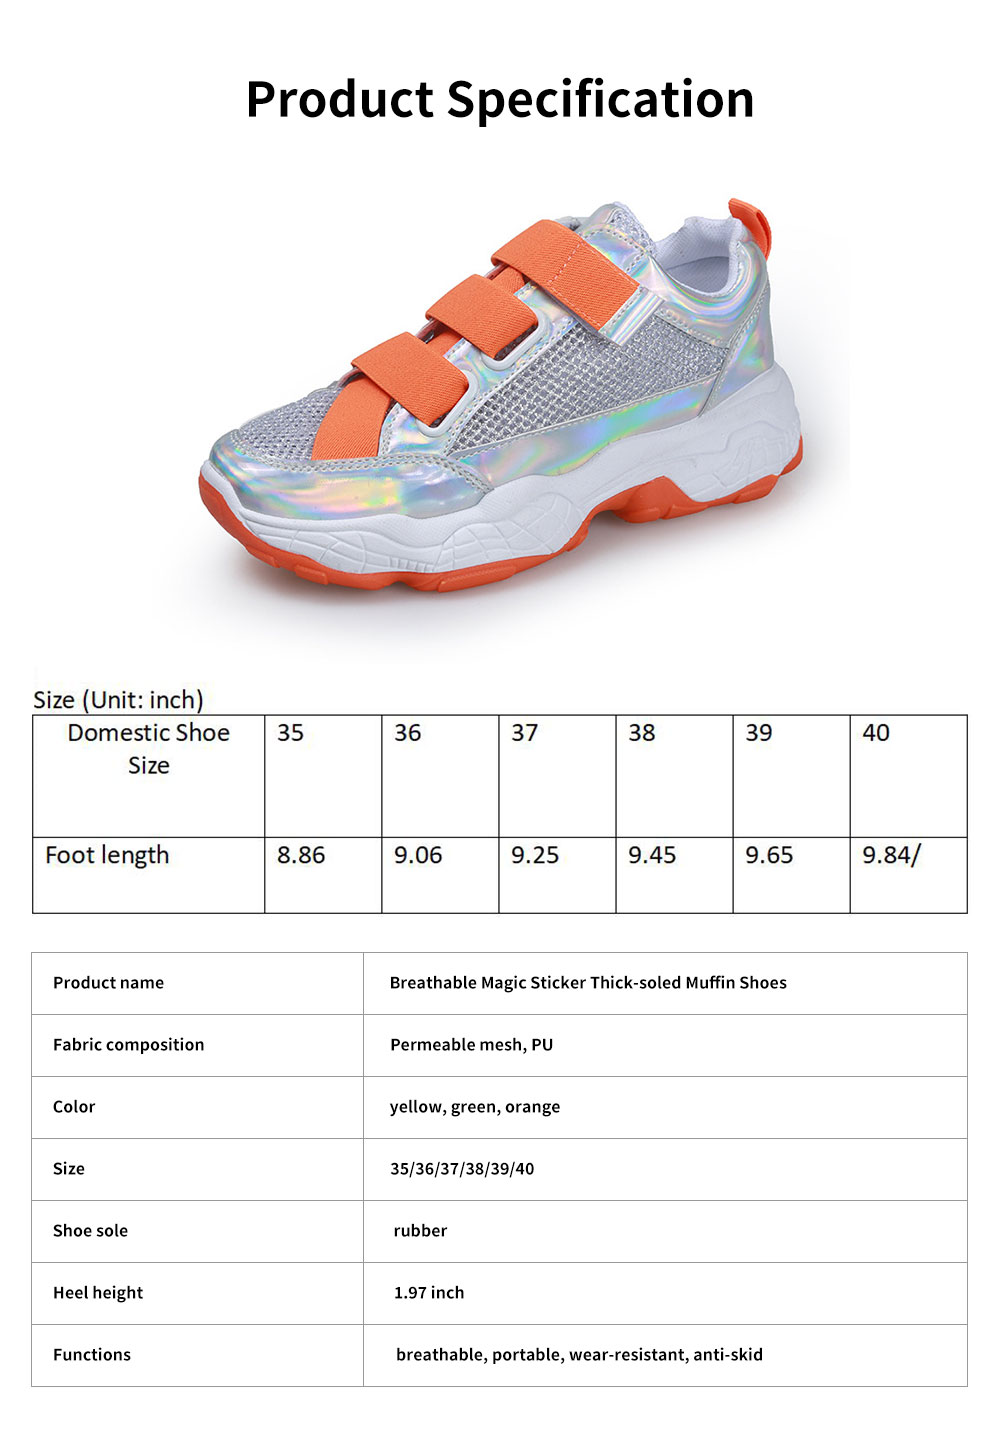 Student's Mesh Hollow Sneakers Breathable Magic Sticker Thick-soled Muffin Shoes, Women's Sneakers 6